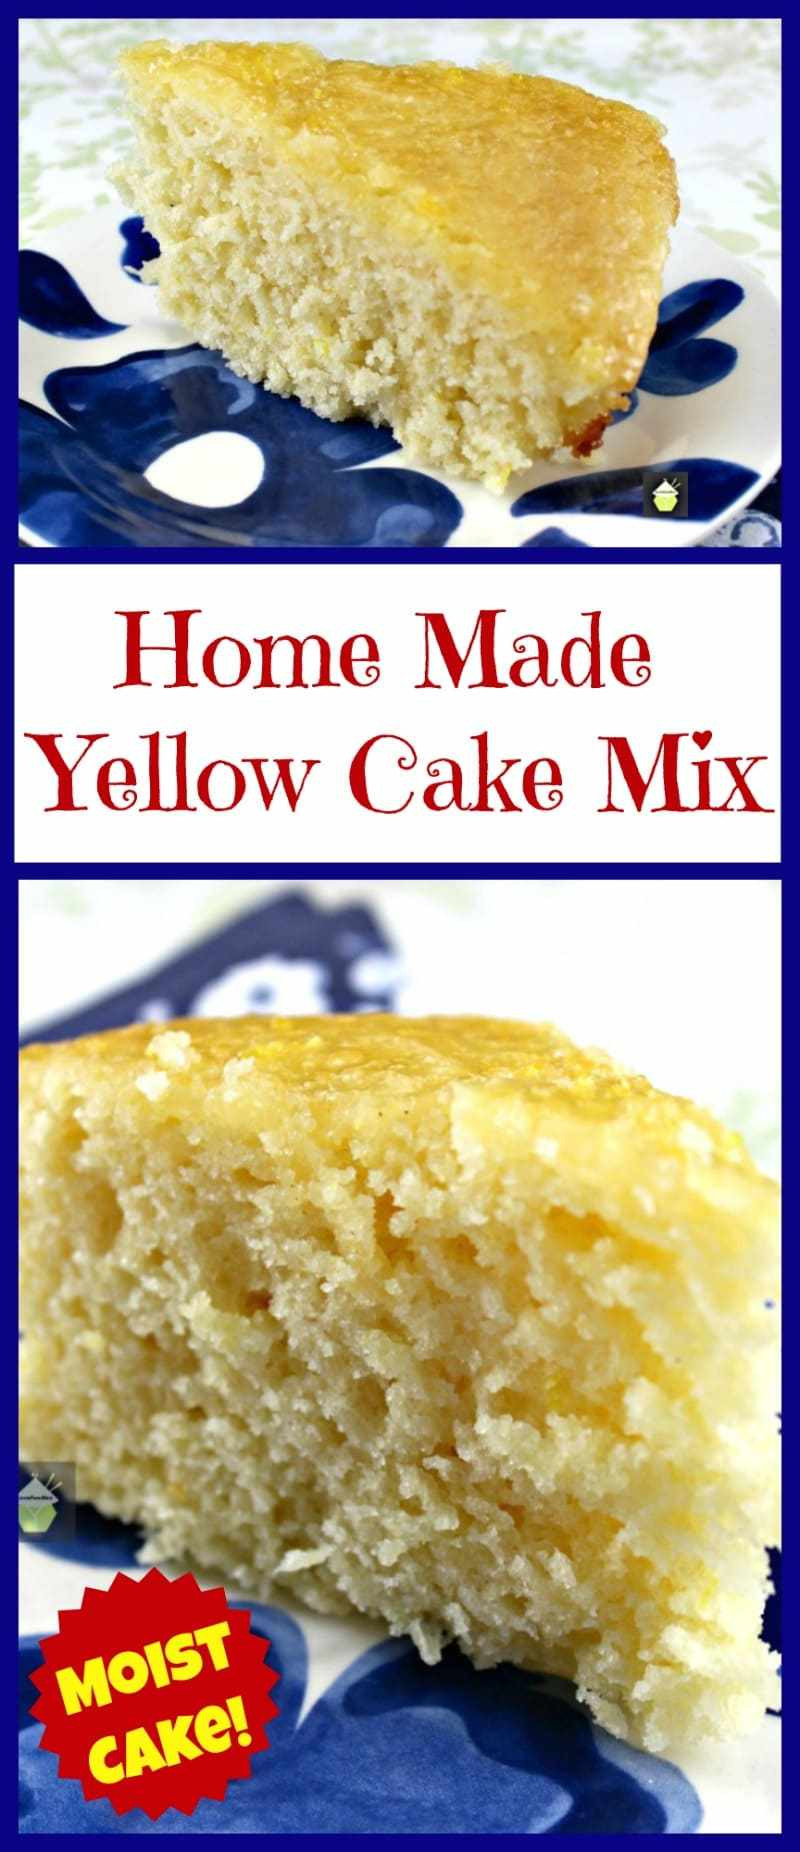 Recipes With Yellow Cake Mix  Home Made Yellow Cake Mix – Lovefoo s